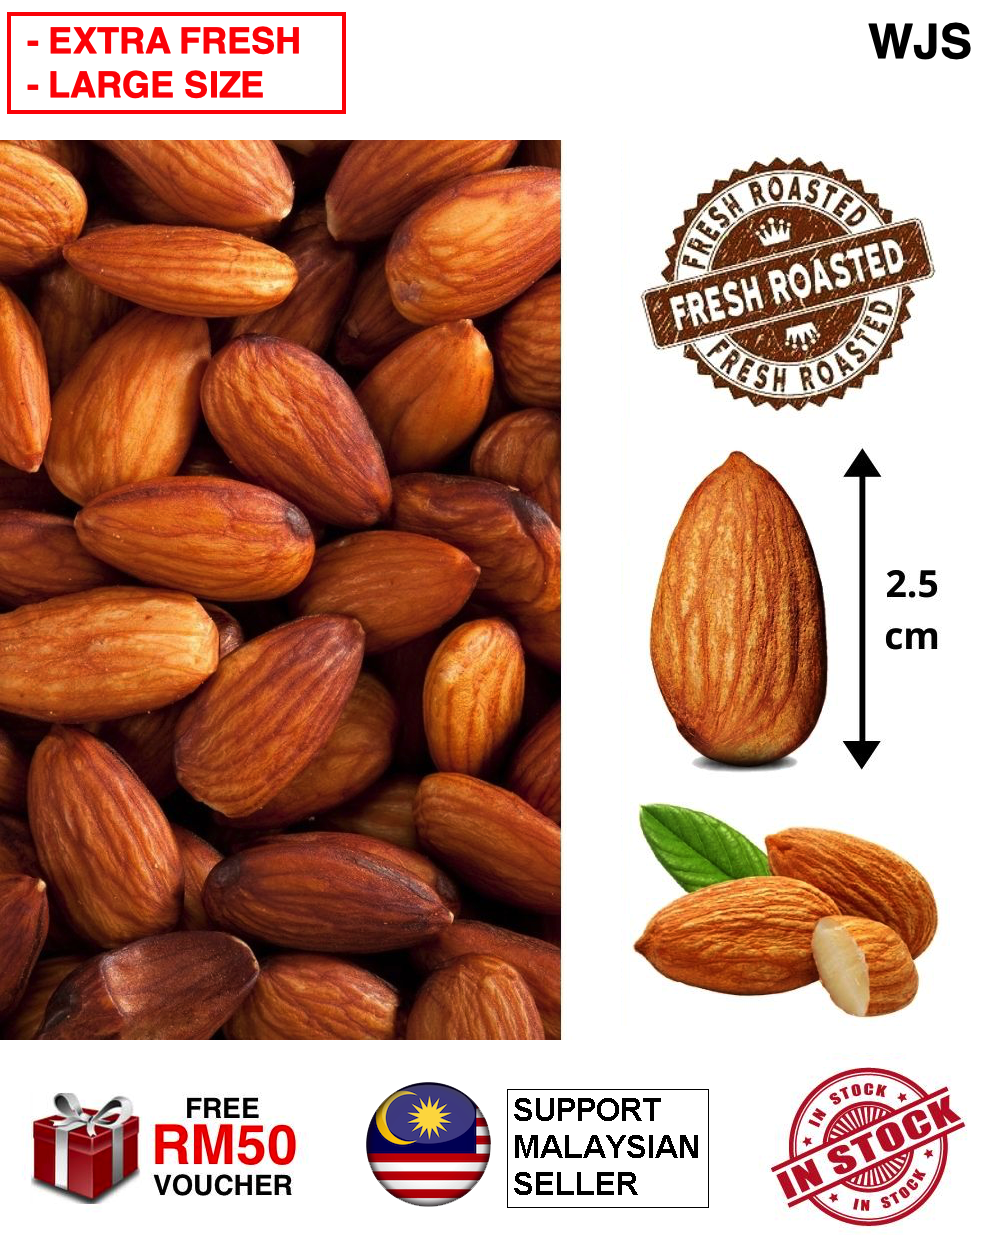 (EXTRA FRESH WITHOUT PRESERVATIVE) WJS Freshly Collected Premium Roasted Almond Nut Almond Nuts Groundnuts Kacang Almond Happy Nuts Xing Ren Guo Kacang Badam FRESH 500G [FREE RM 50 VOUCHER]